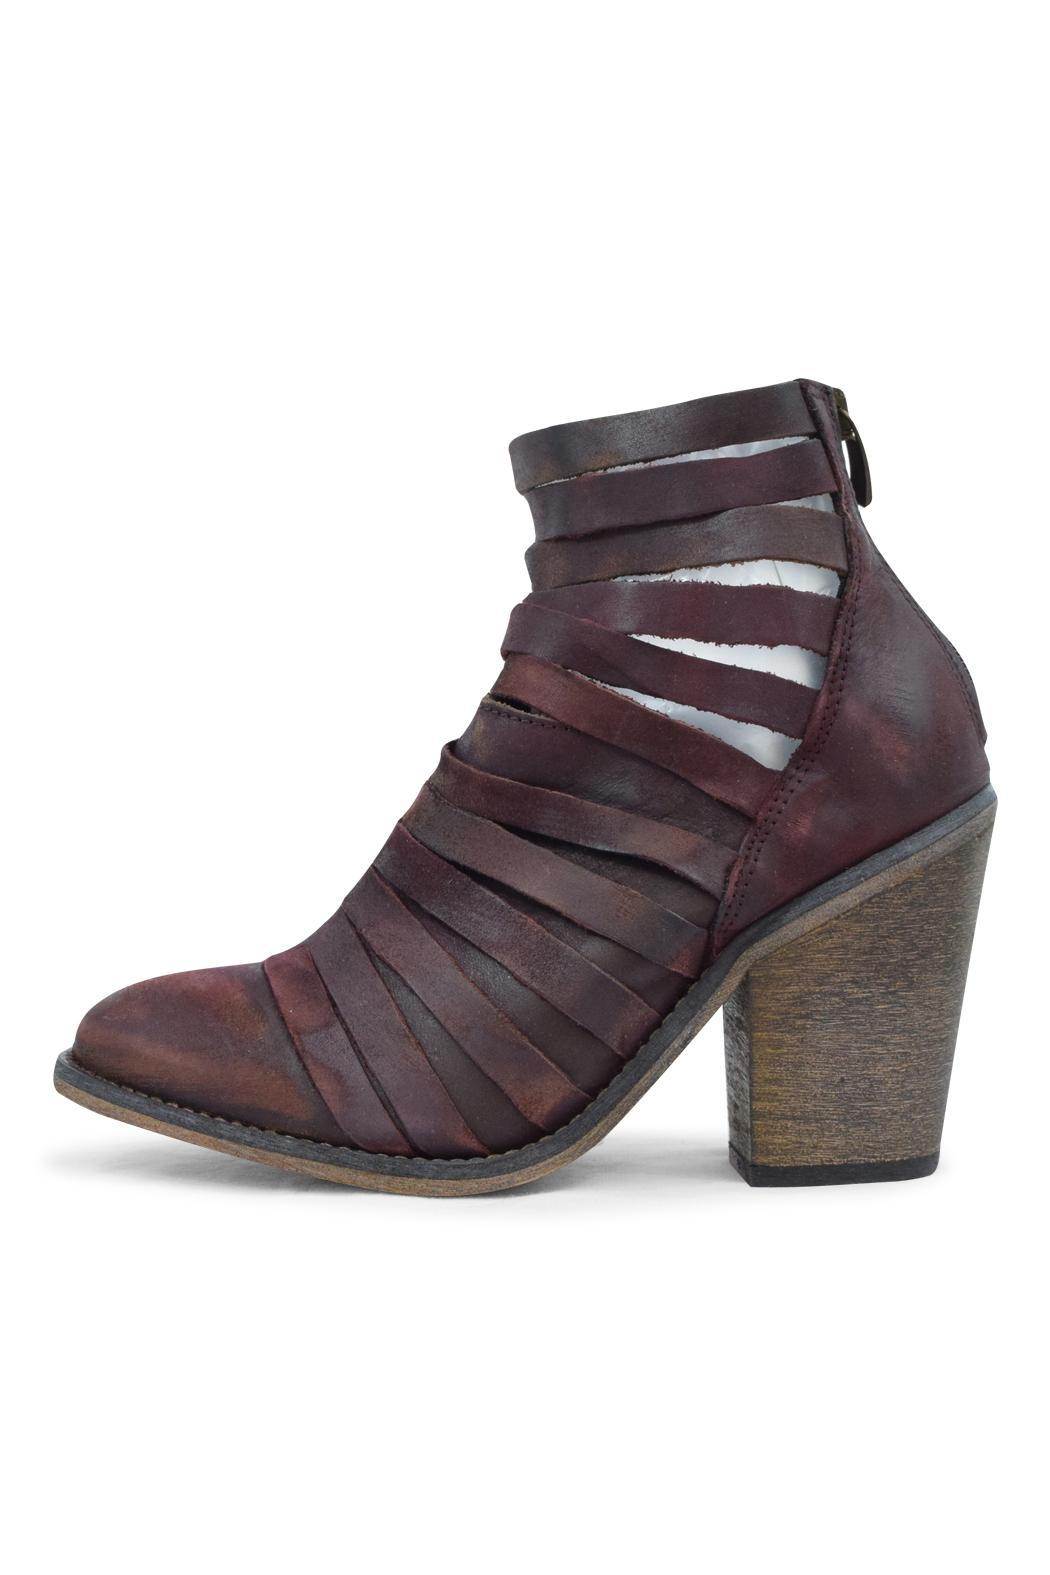 Free People Aubergine Strappy Bootie - Main Image